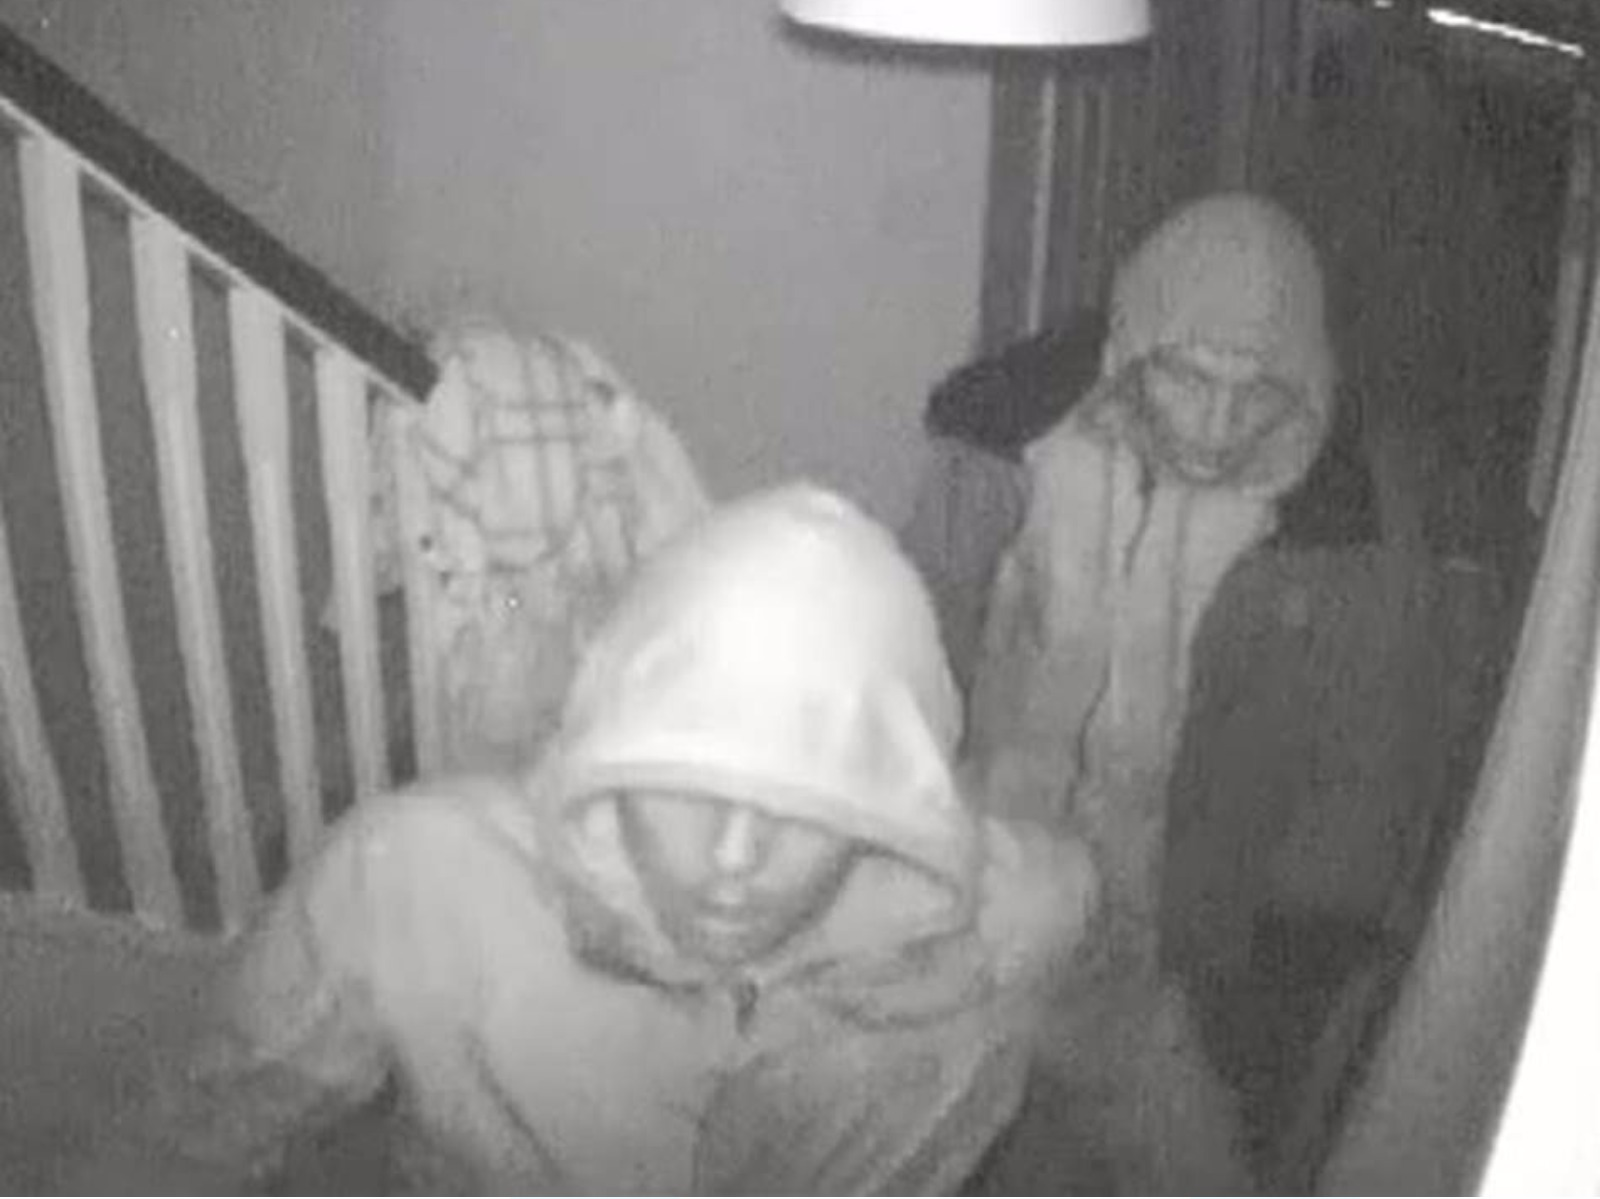 chilling cctv footage shows burglars creeping around home as owner sleeps west country itv news. Black Bedroom Furniture Sets. Home Design Ideas